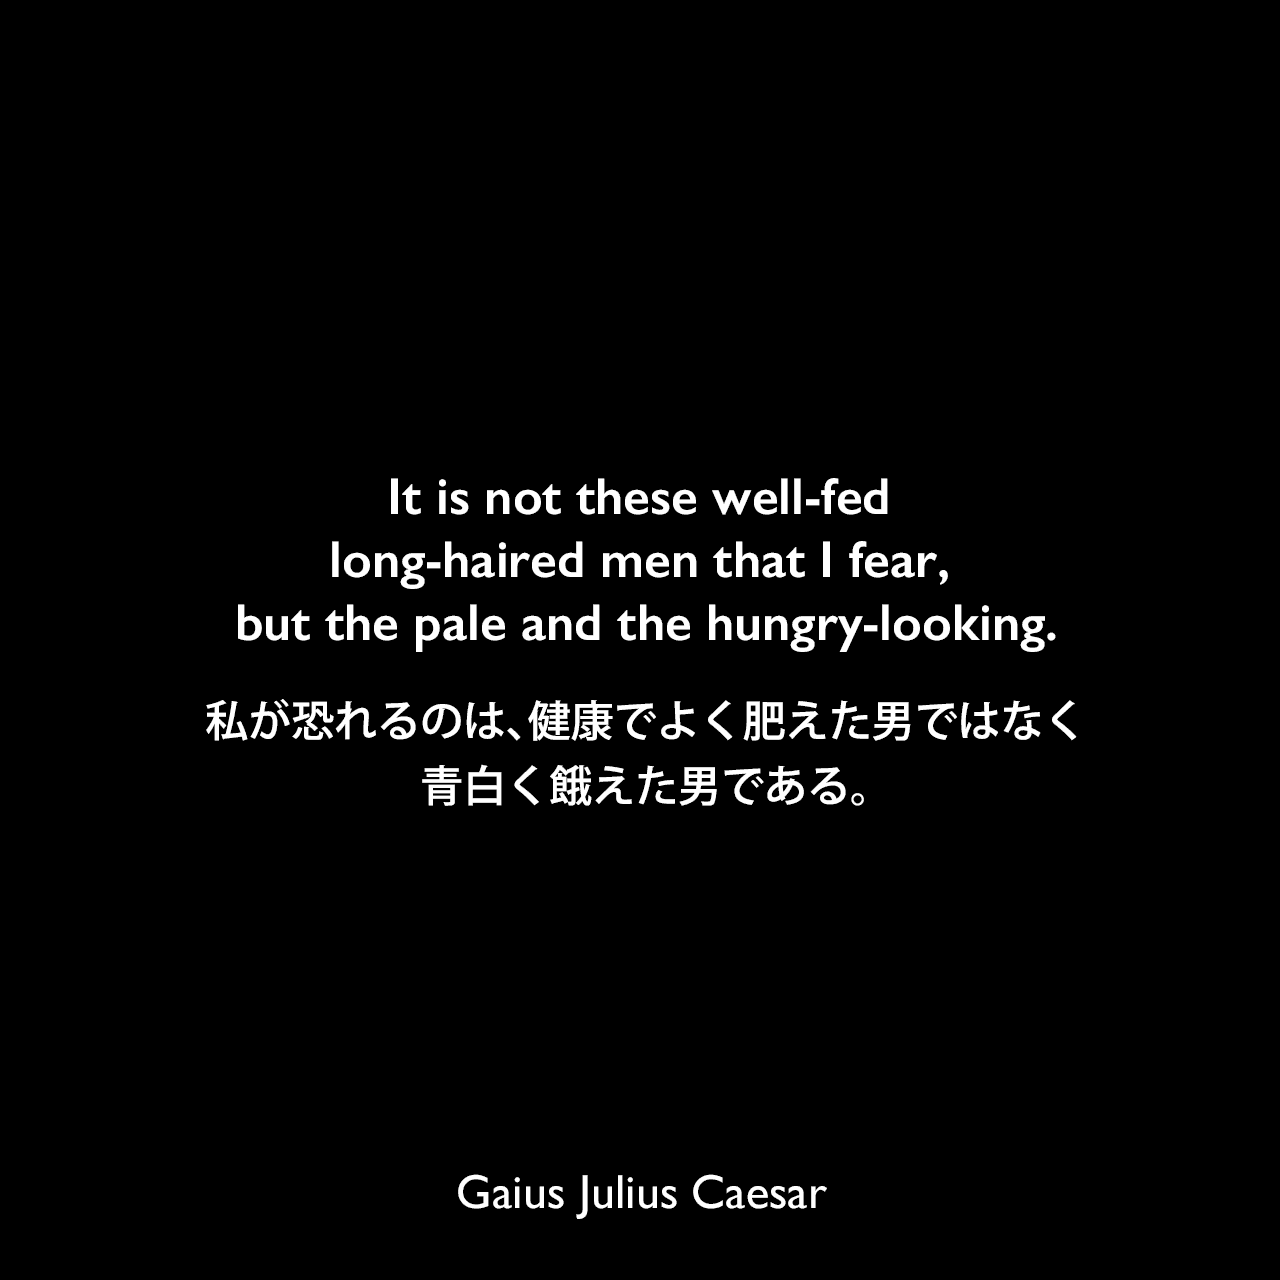 It is not these well-fed long-haired men that I fear, but the pale and the hungry-looking.私が恐れるのは、健康でよく肥えた男ではなく、青白く餓えた男である。Gaius Julius Caesar